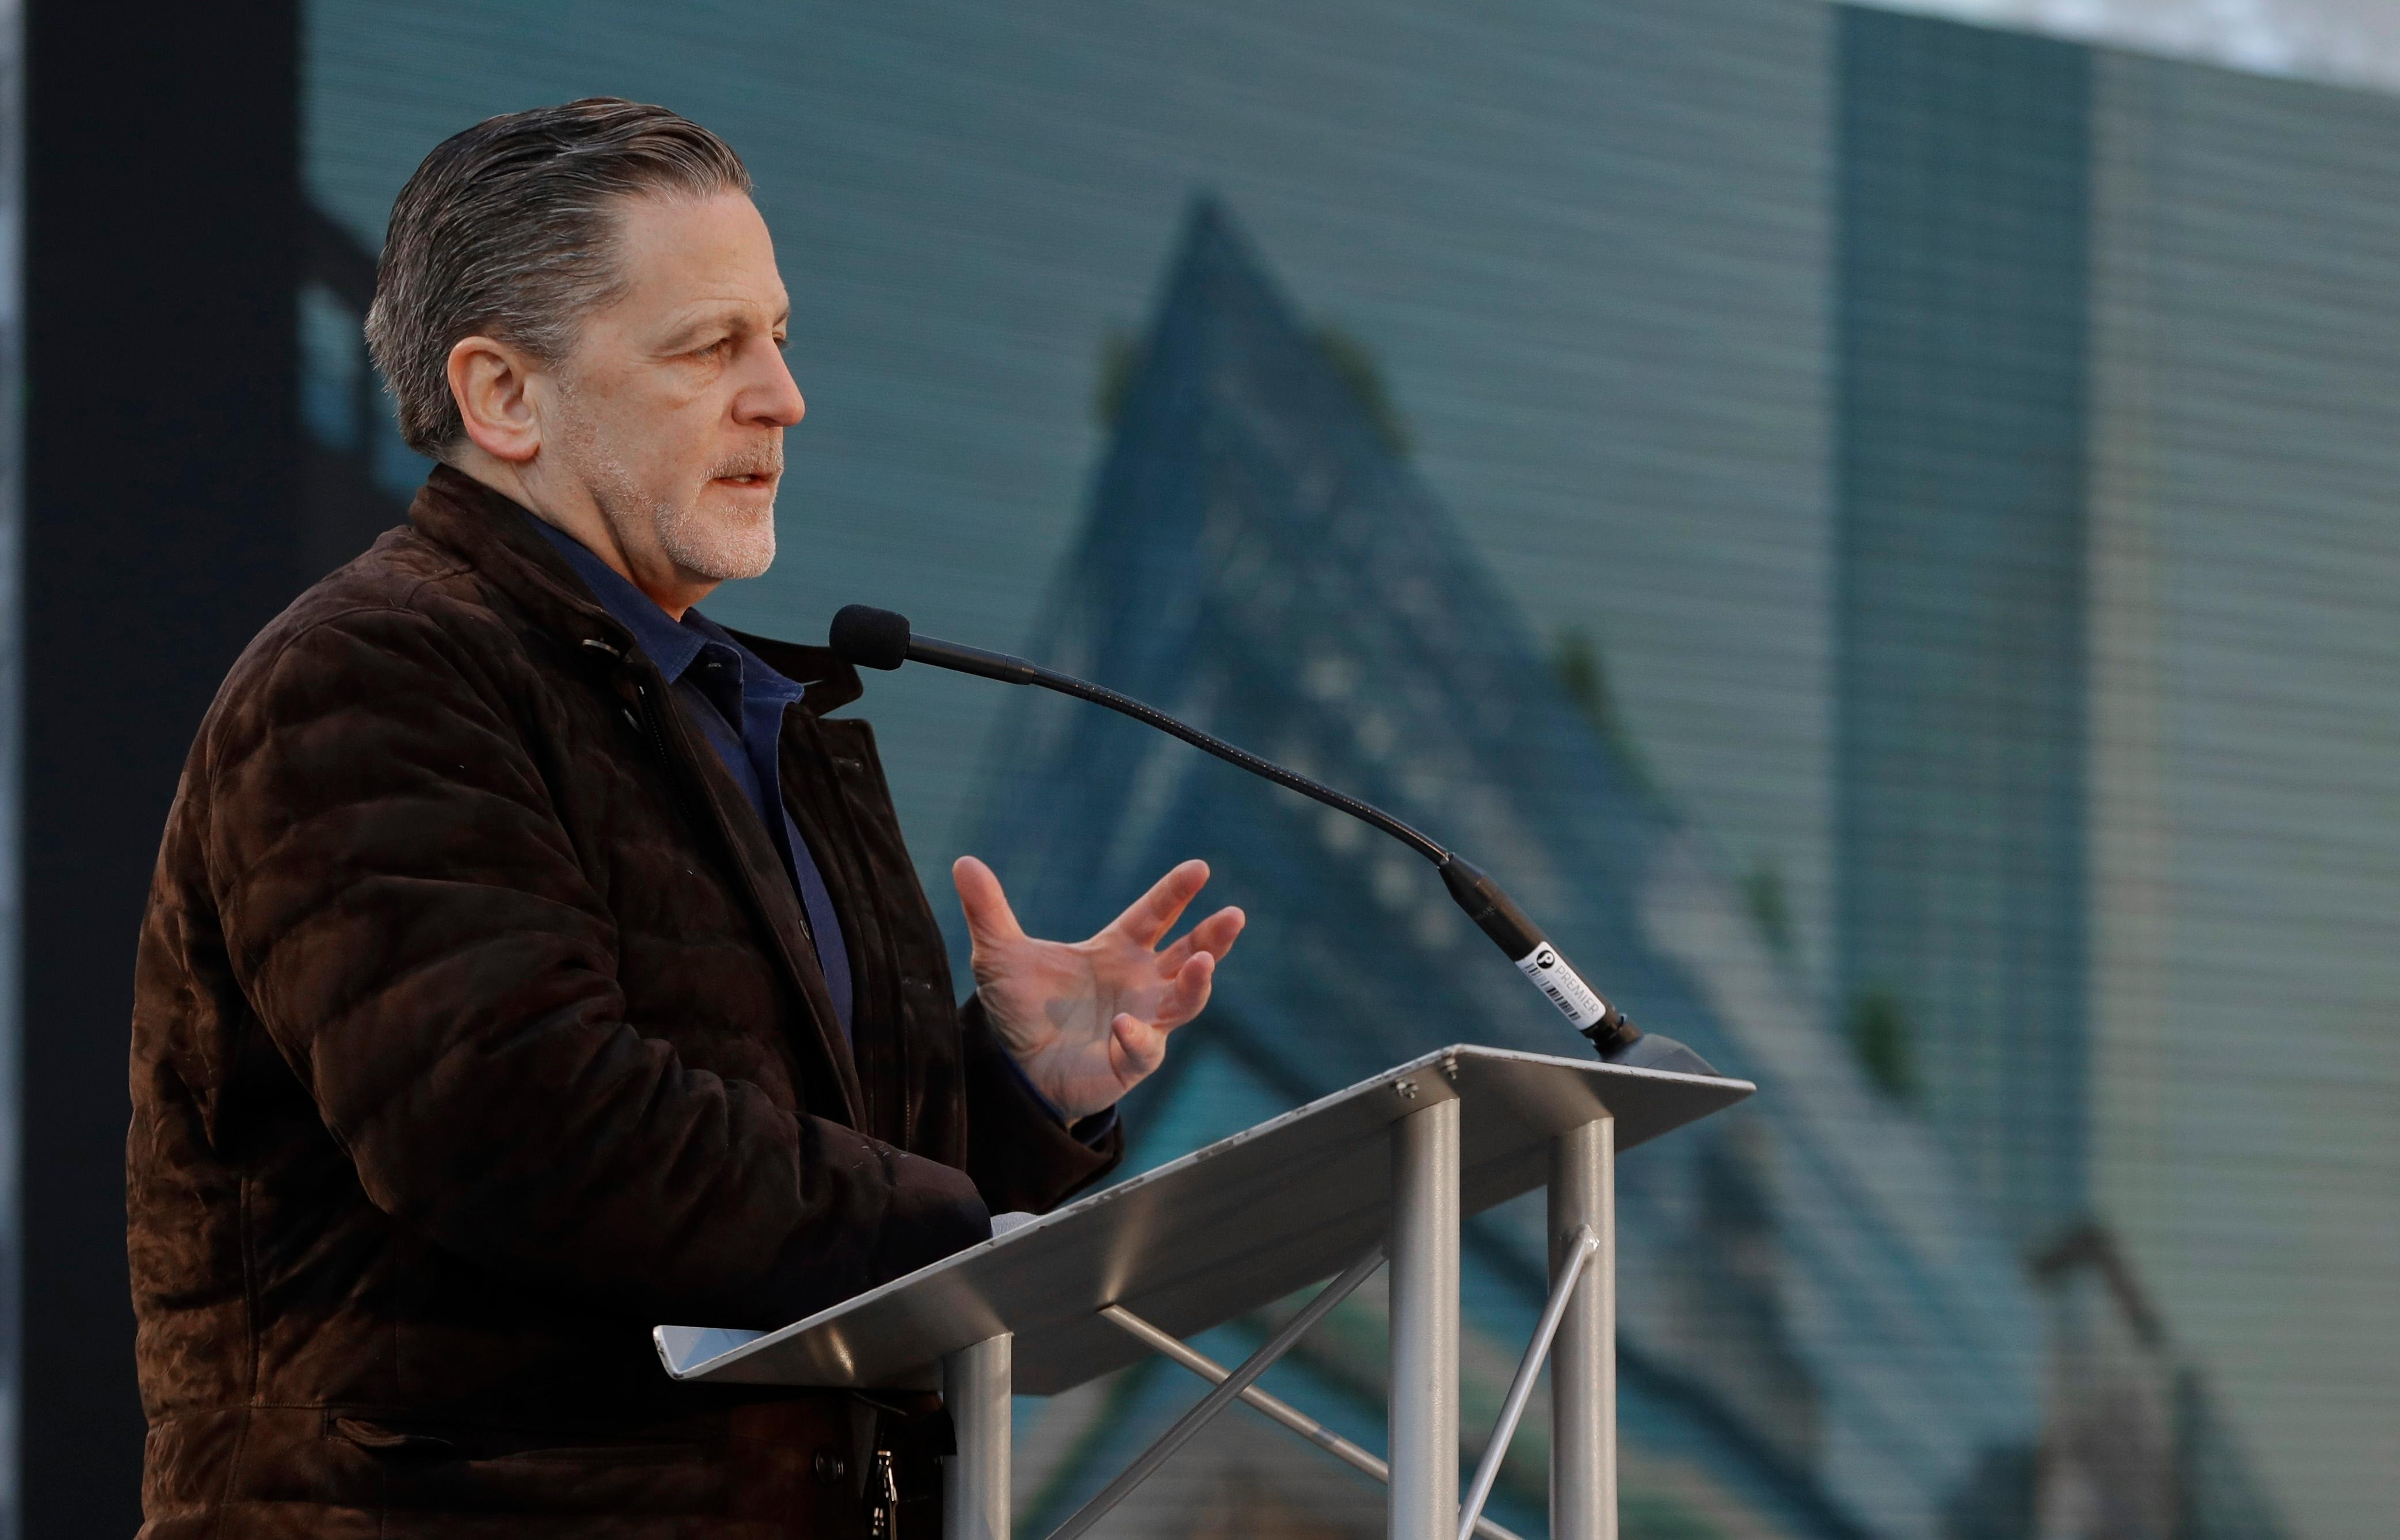 Quicken Loans founder Dan Gilbert, addresses attendees at the former site of the J.L. Hudson Co. department store, Thursday, Dec. 14, 2017, in Detroit. Ground was broken for a new 800-foot-tall, $900 million two-building project that will include a 58-story residential tower and 12-floor building for retail and conference space. The tower will have an 800-foot-tall (244-meter) sky deck.(AP Photo/Carlos Osorio)